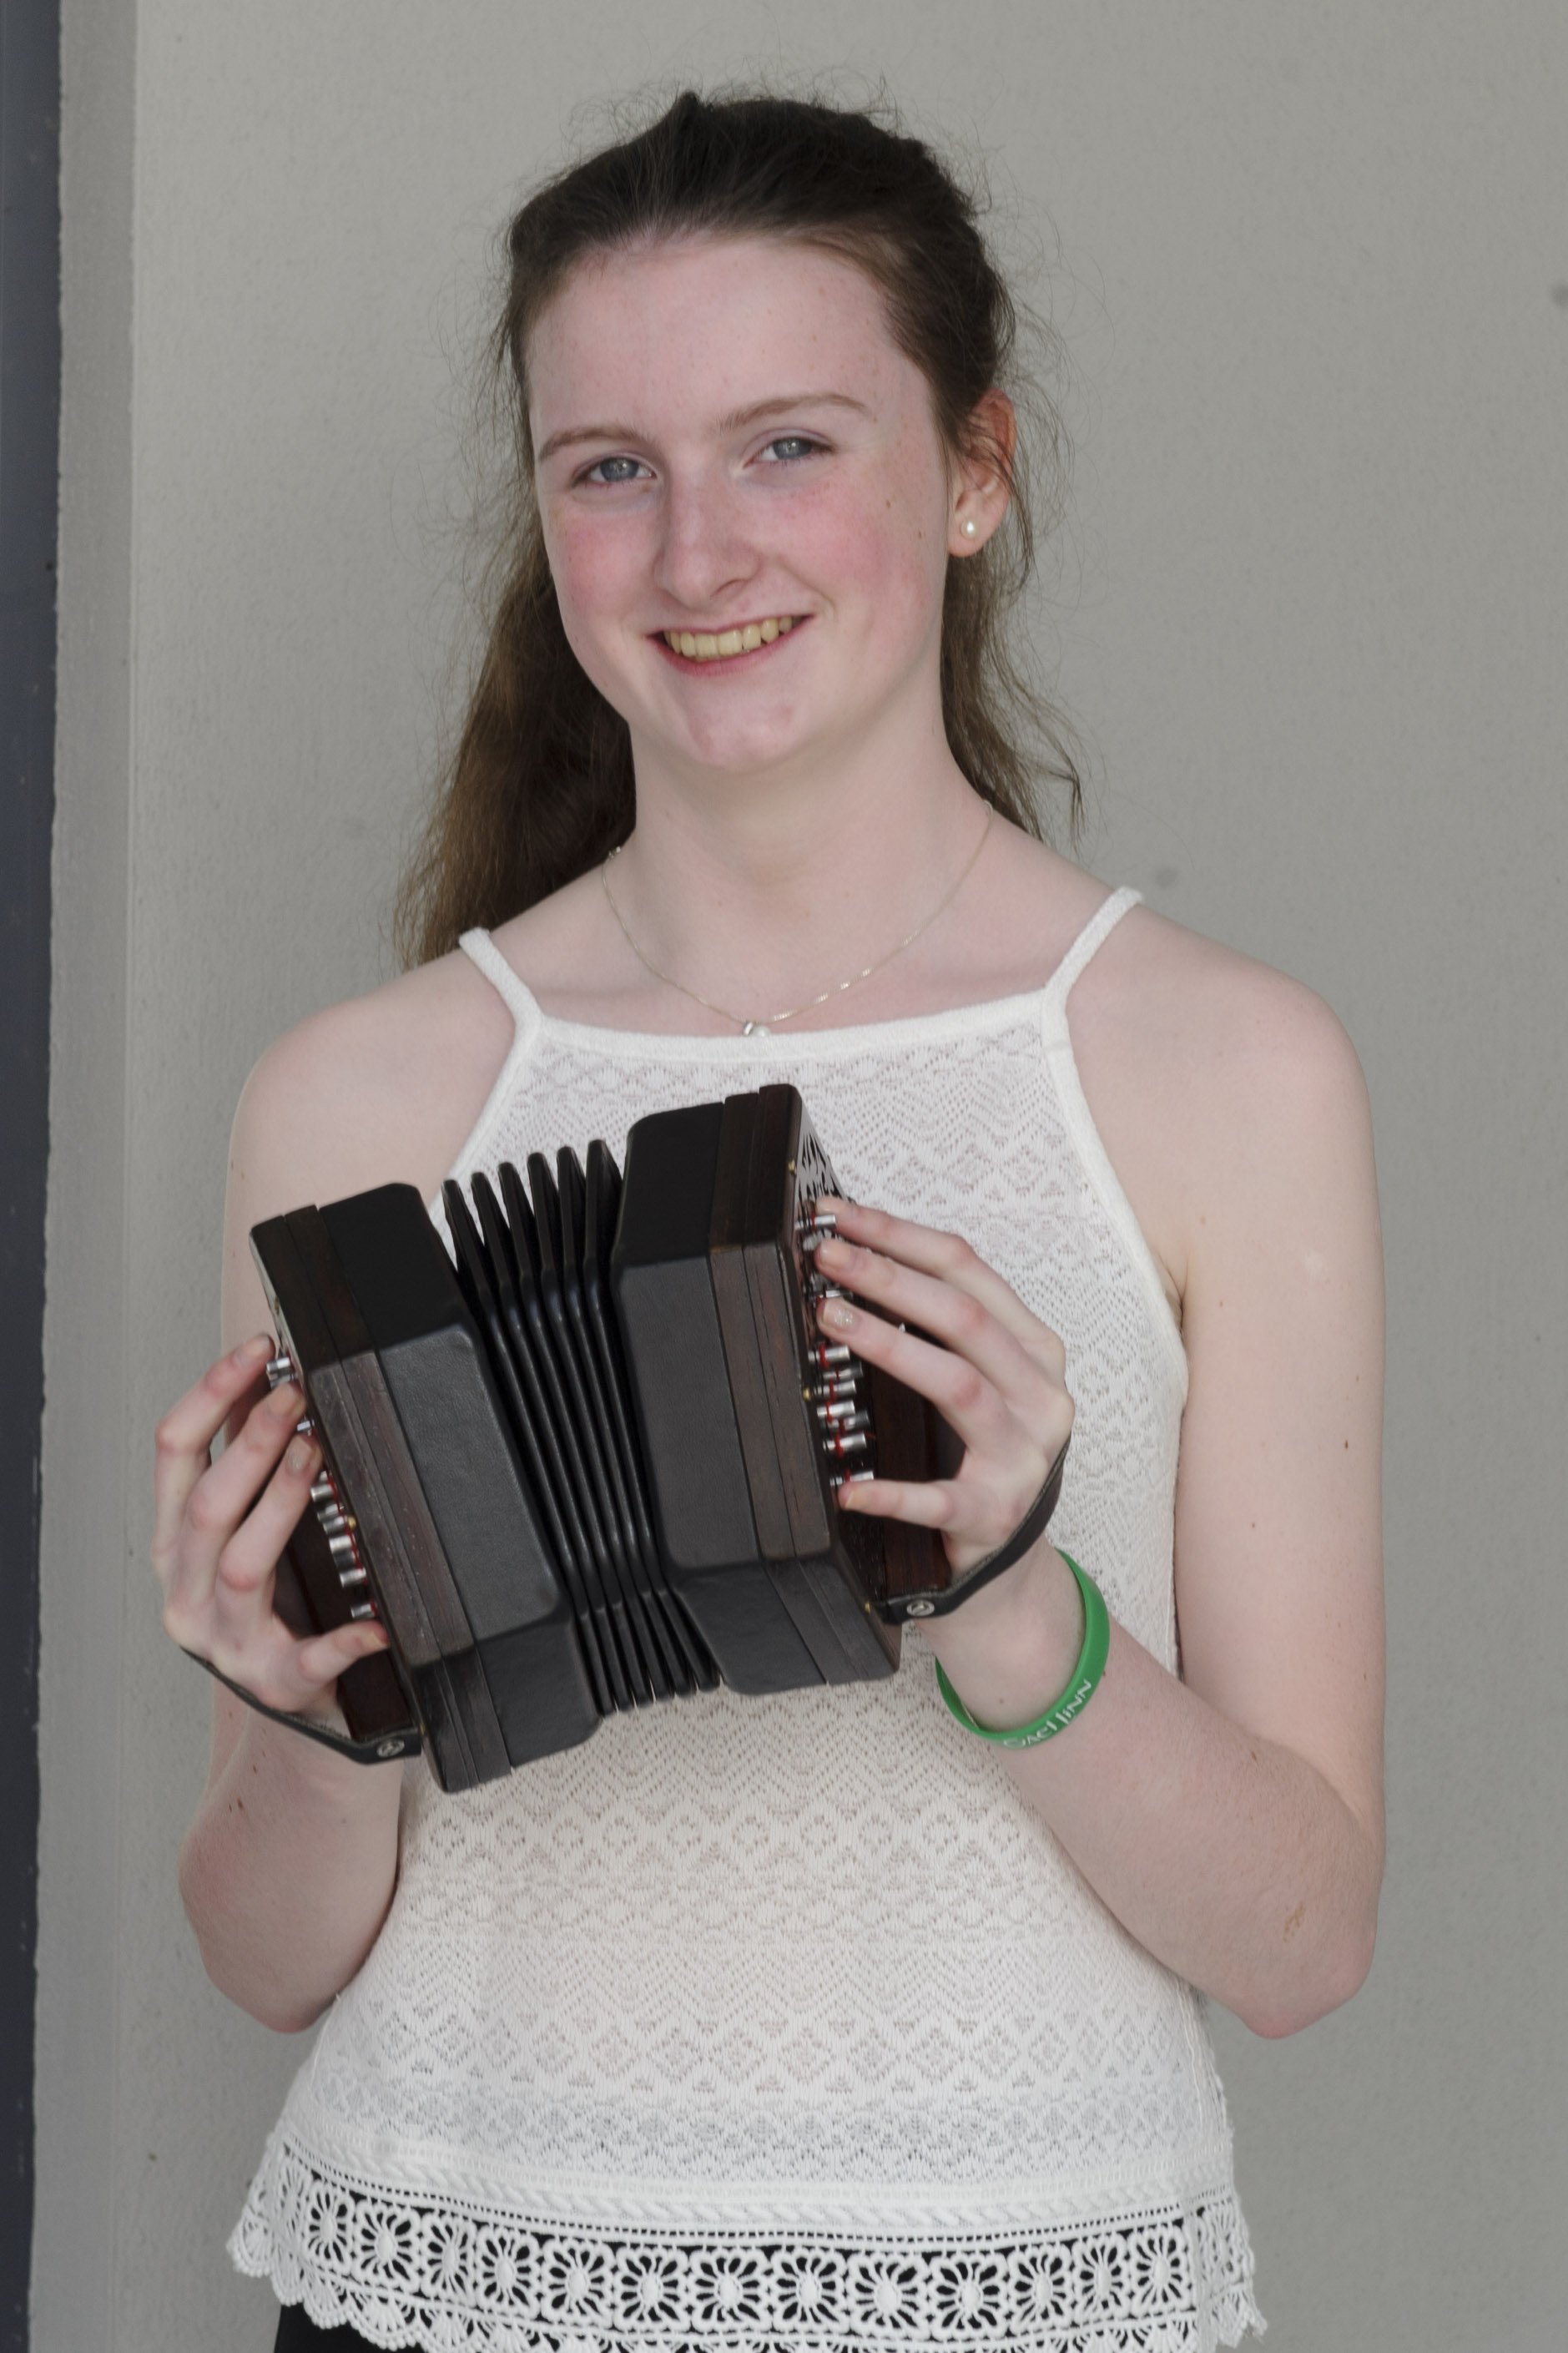 Muireann Harraghey from Éamonn Ó Muiri CCE, who was winner of the U-15 Harp Slow Air & Harp, 3rd in the Concertina and 2nd in the Duet along with Aoife McCague. ©Rory Geary/The Northern Standard